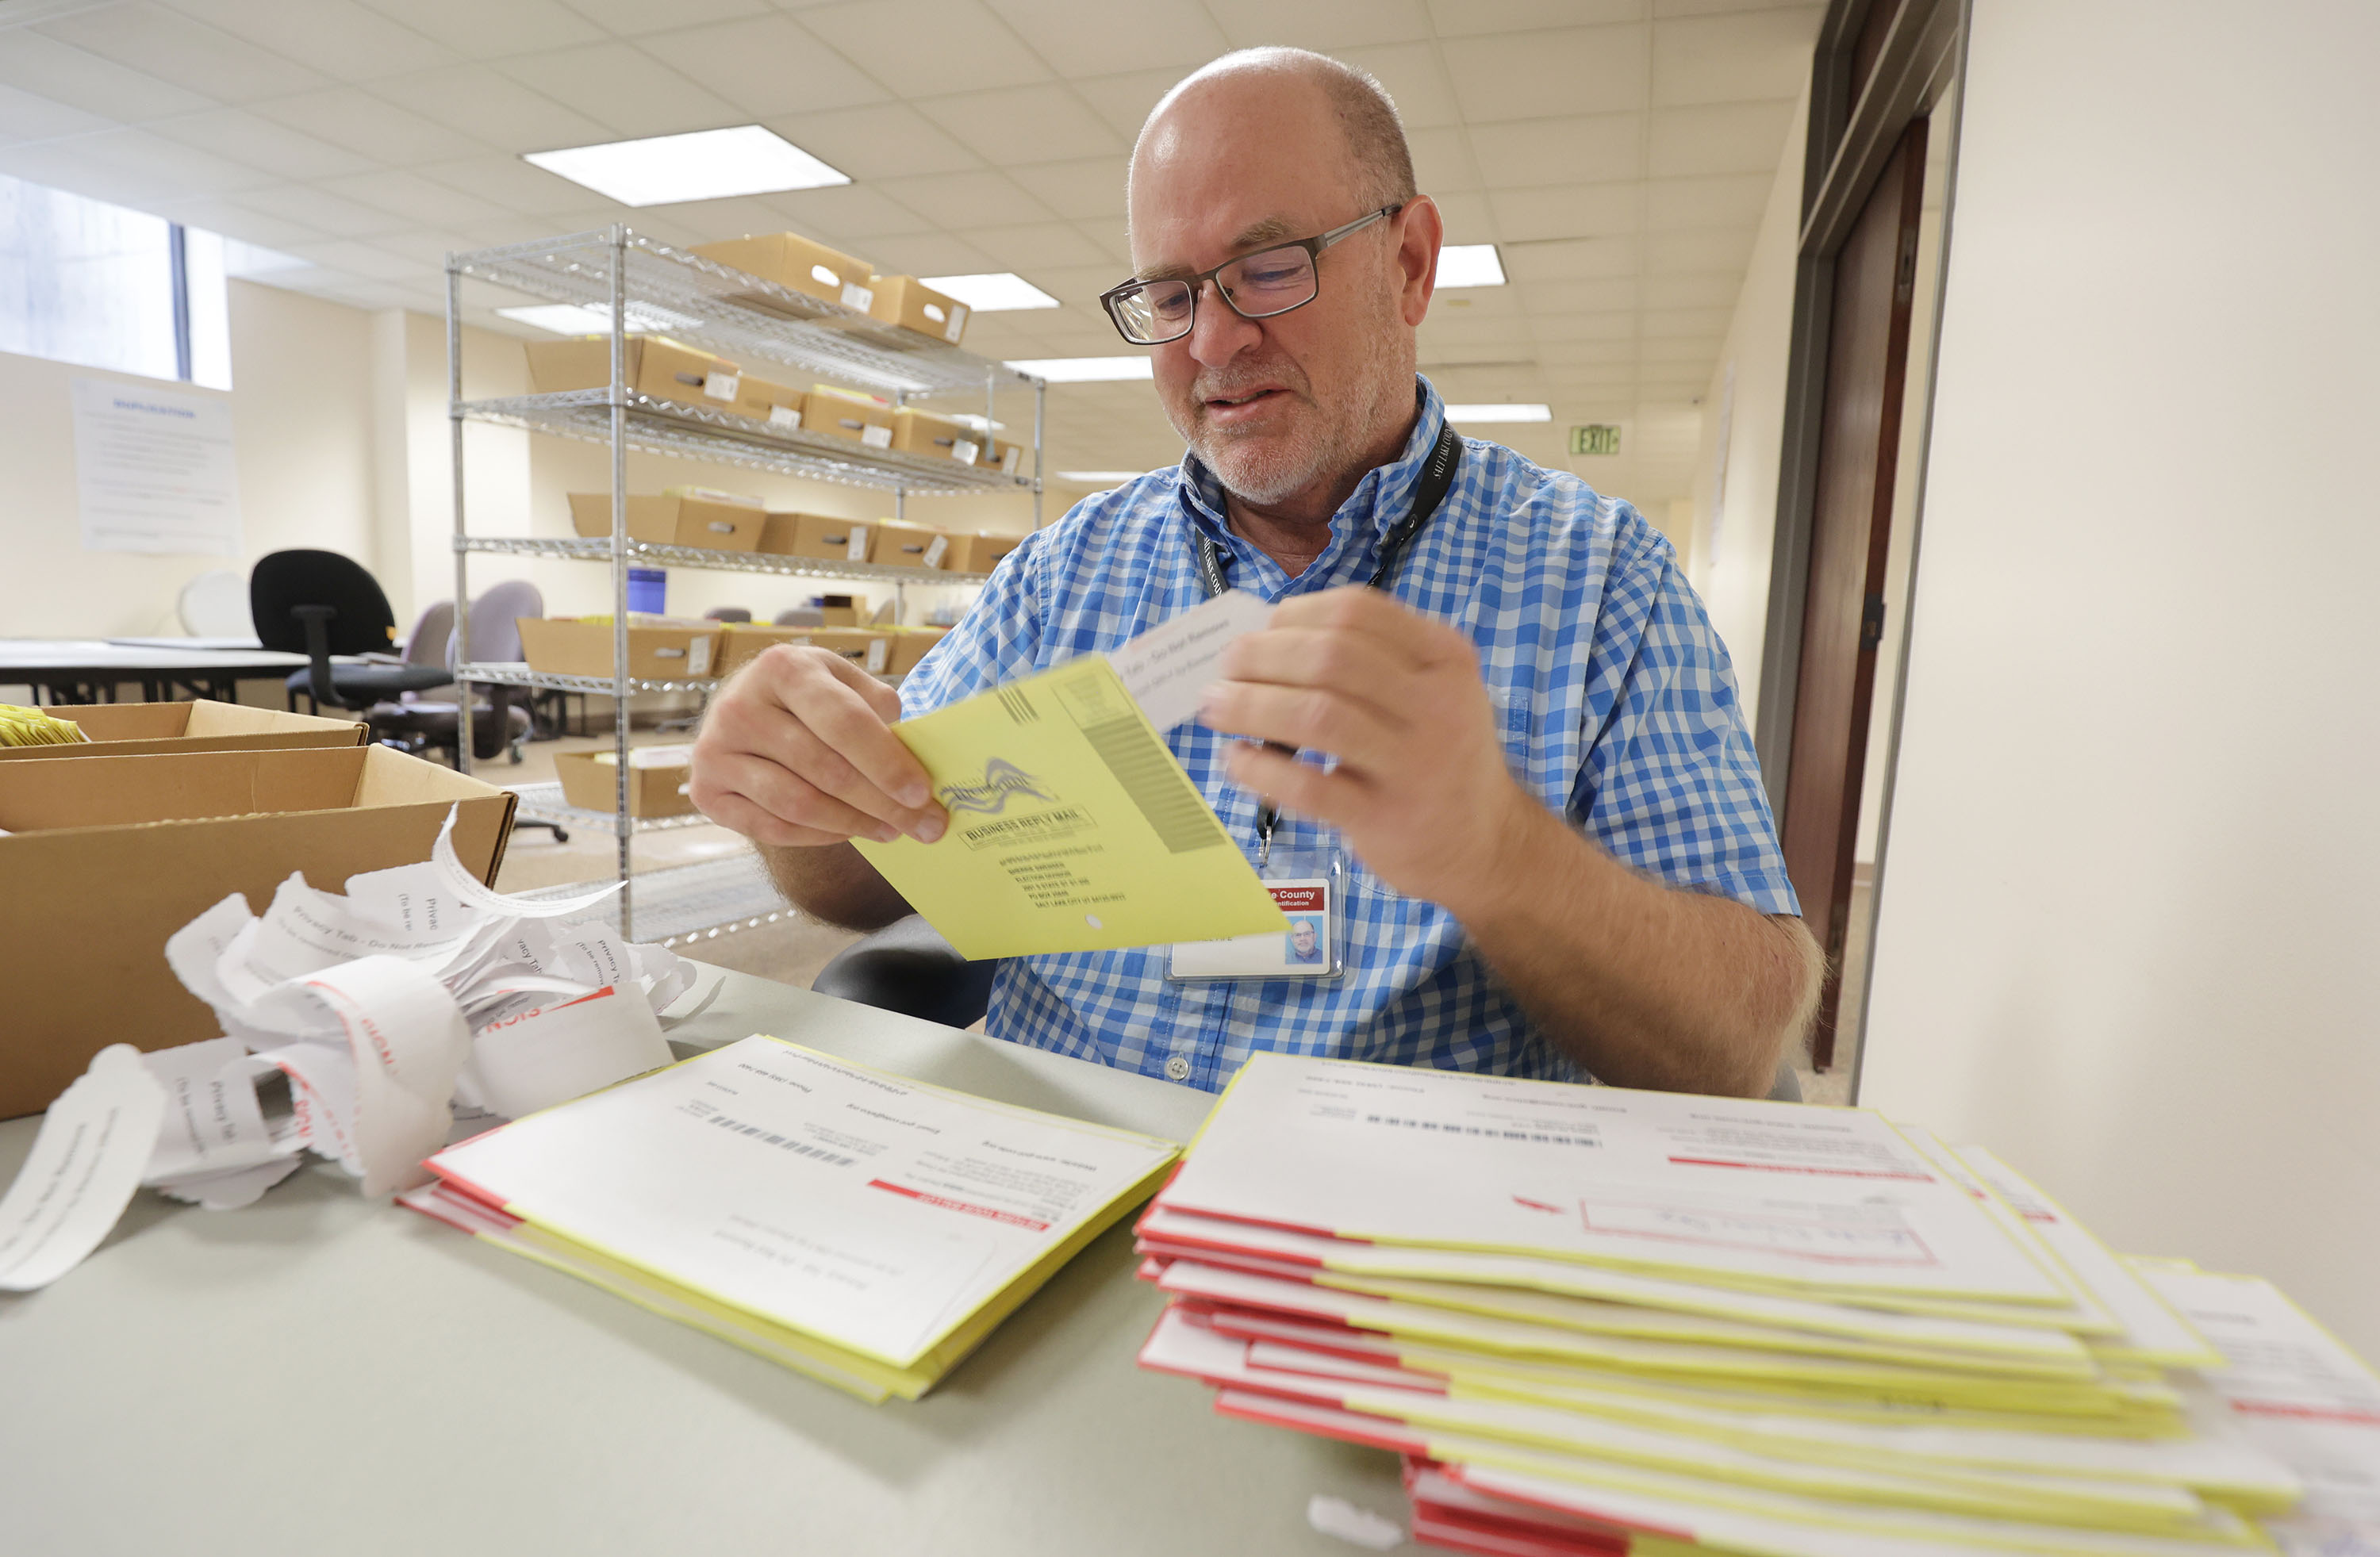 Salt Lake County Election Coordinator Michael Fife tabs returned ballots at the Salt Lake County Government Center in Salt Lake City on Wednesday, July 28, 2021.